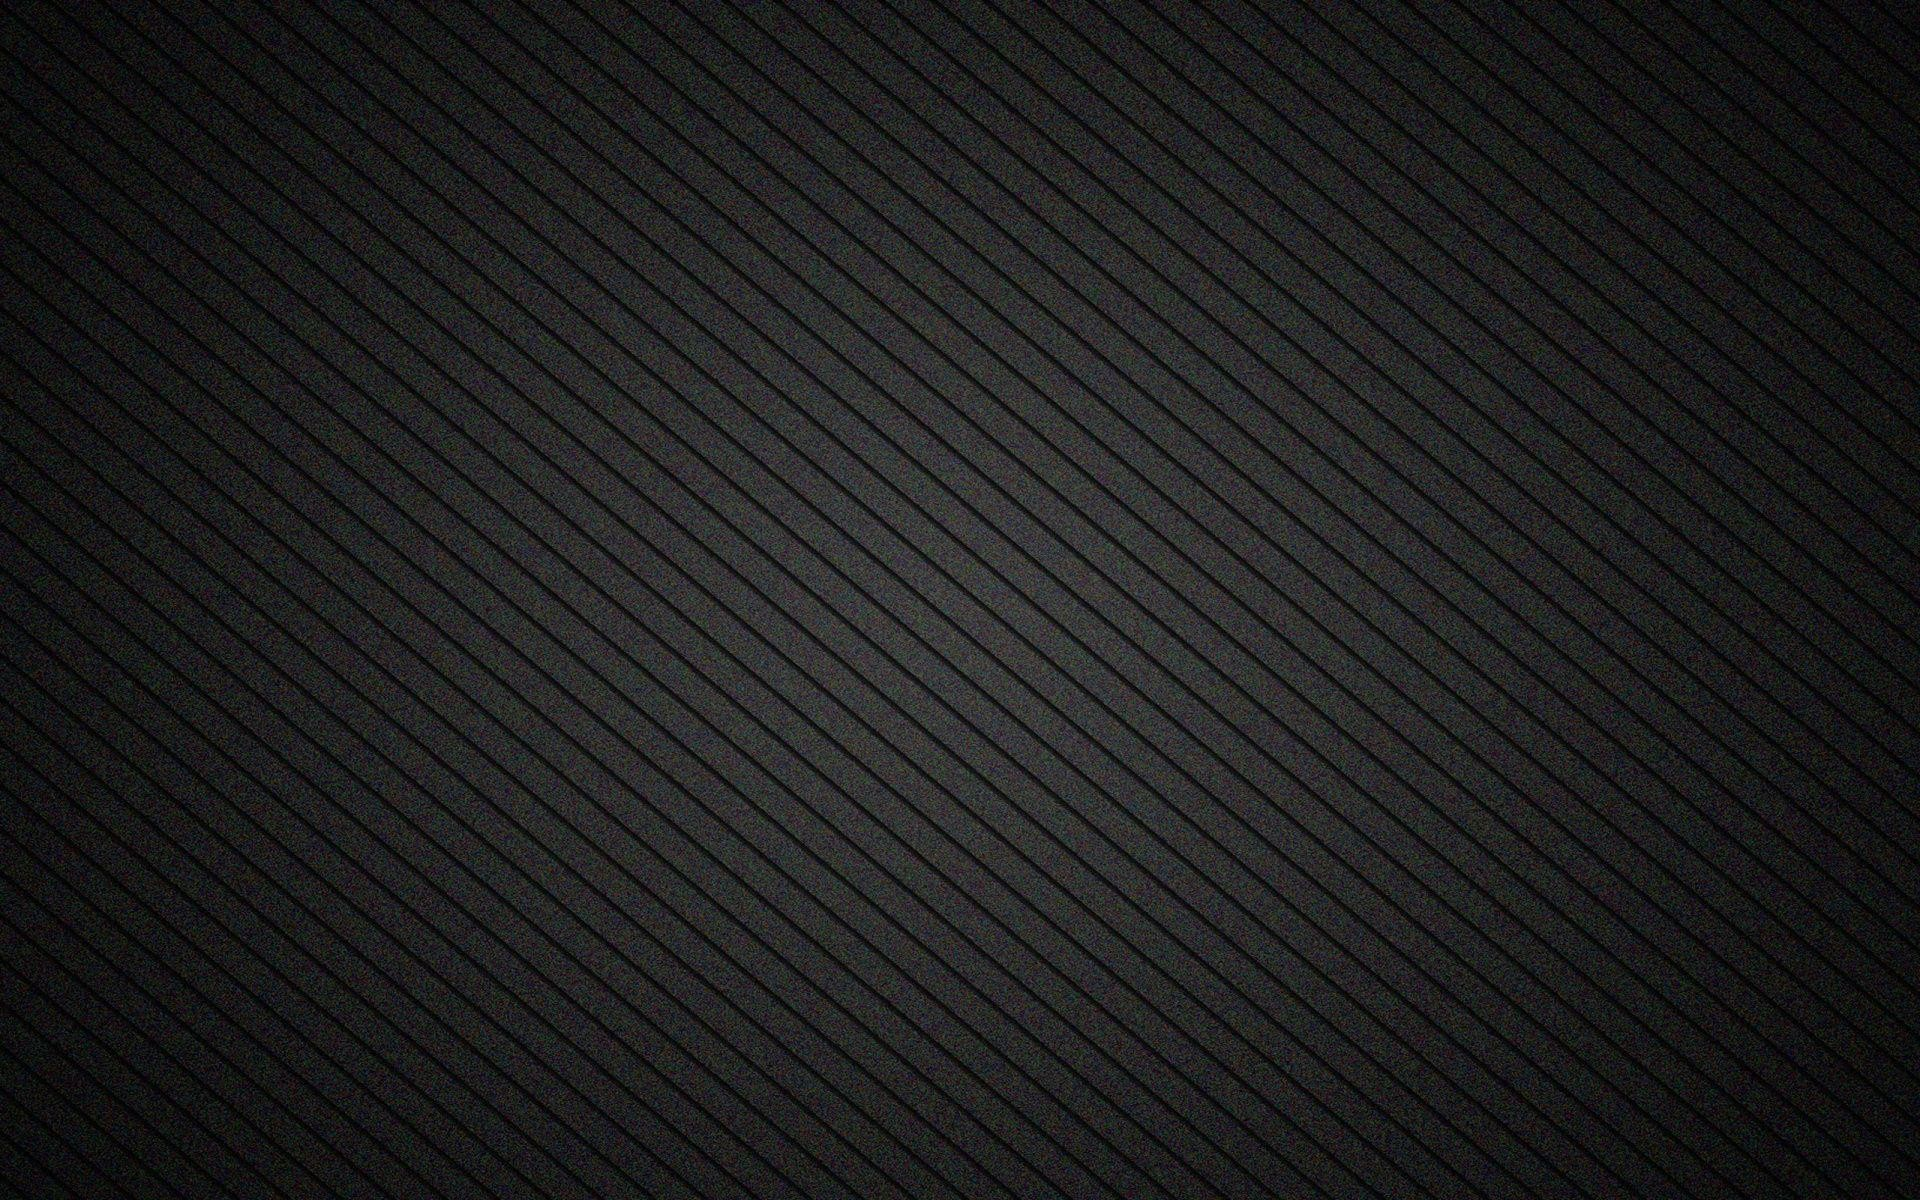 1920x1200 black wallpaper hd for mobile free download #1072820